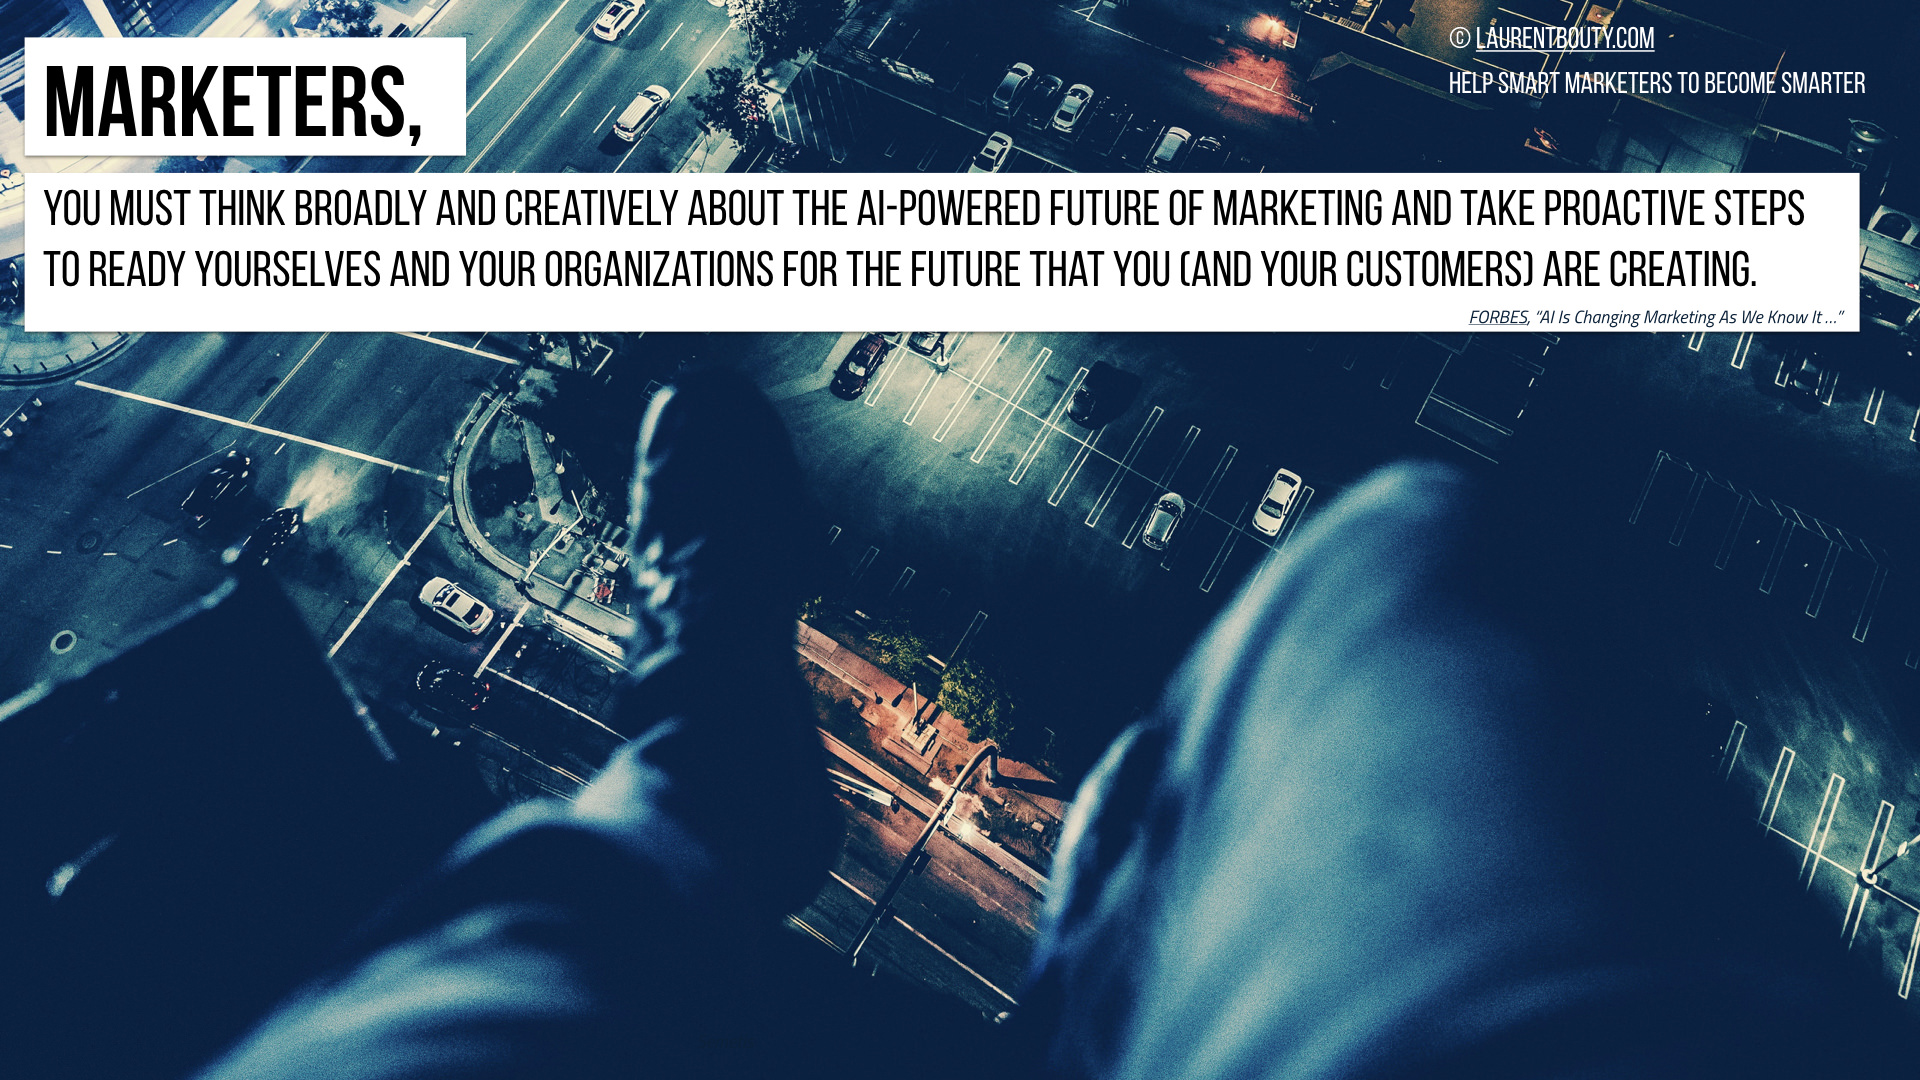 Marketers, you must think broadly and creatively about AI-Powered Future